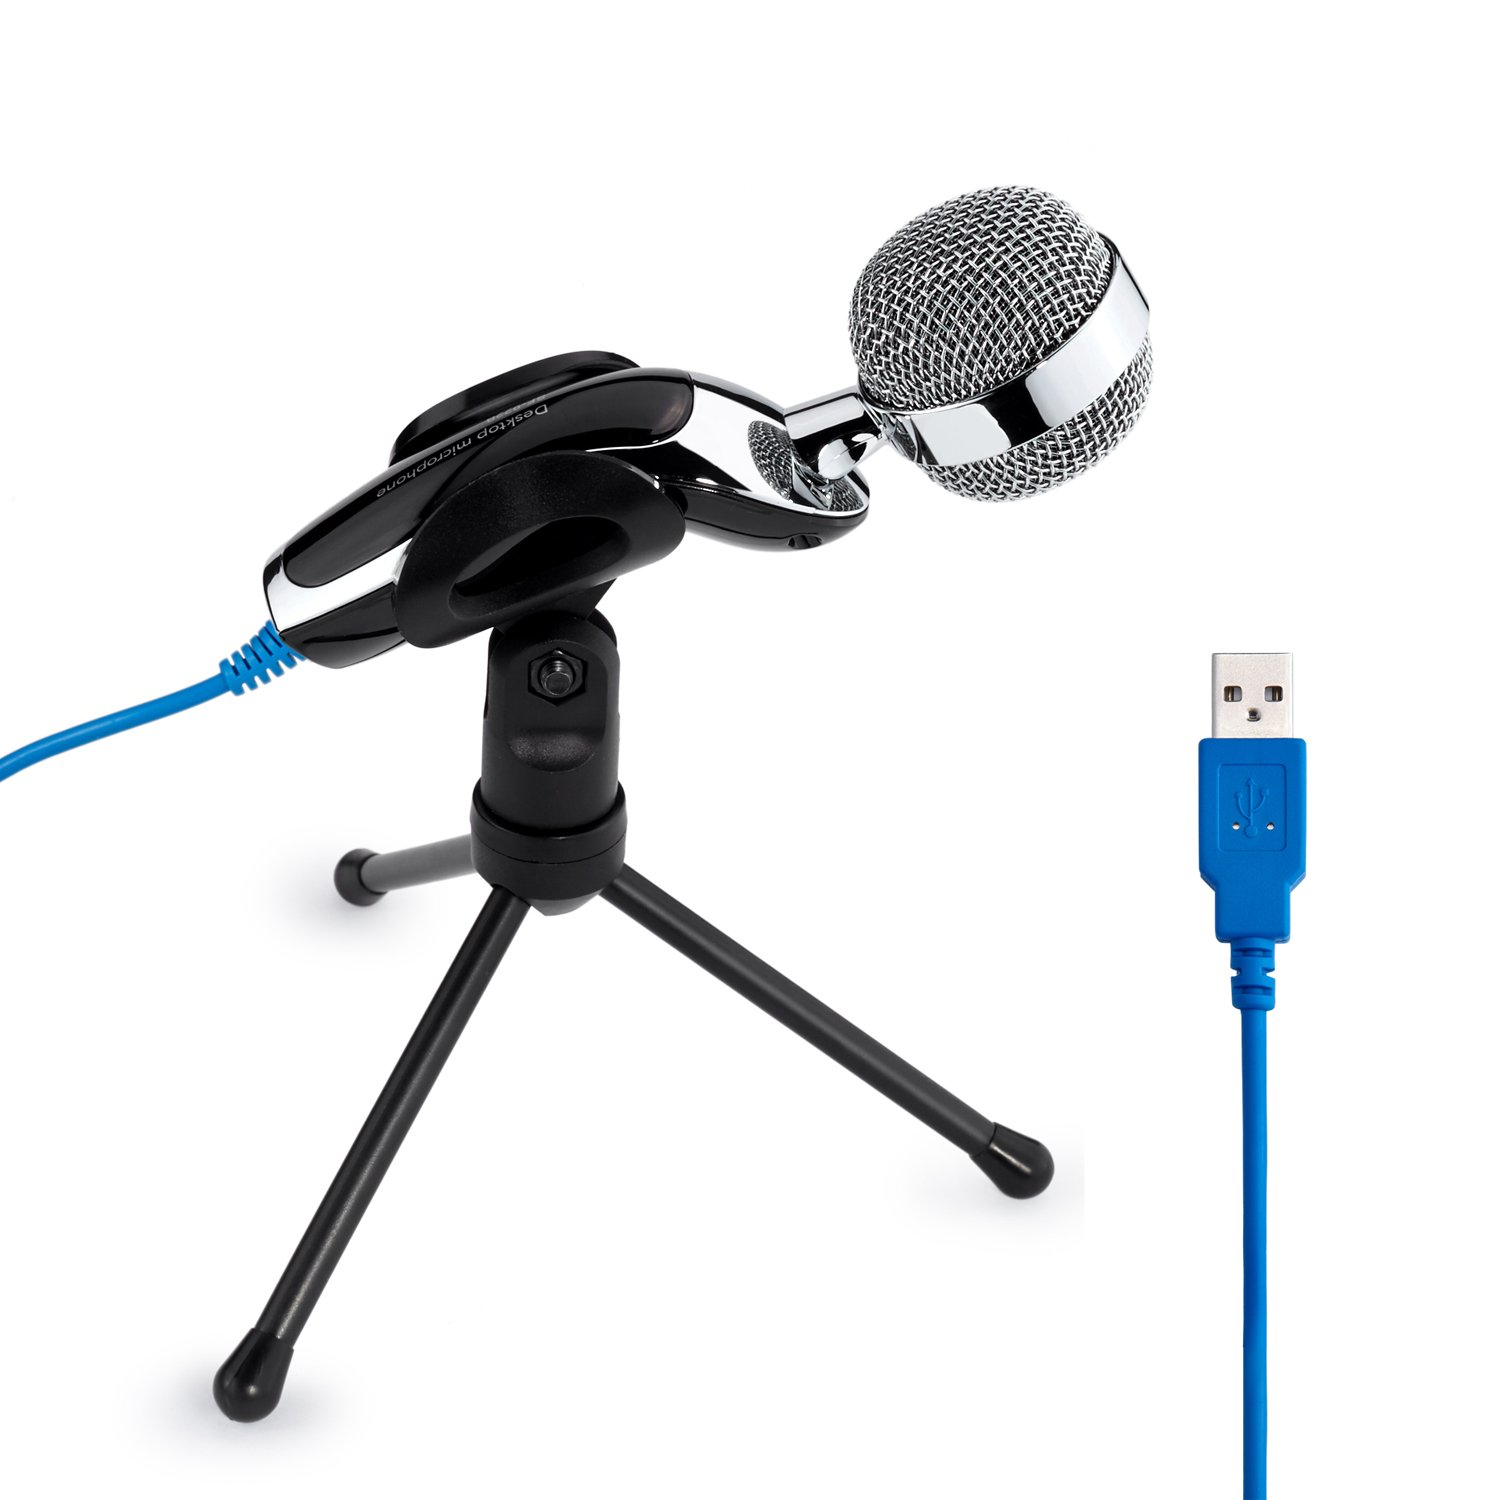 Tonor® USB Clear Digital Sound & Professional Condenser Sound Microphone with Stand for Skype PC Mac Laptop Recording bm700 condenser microphone dynamic recording with shock mount